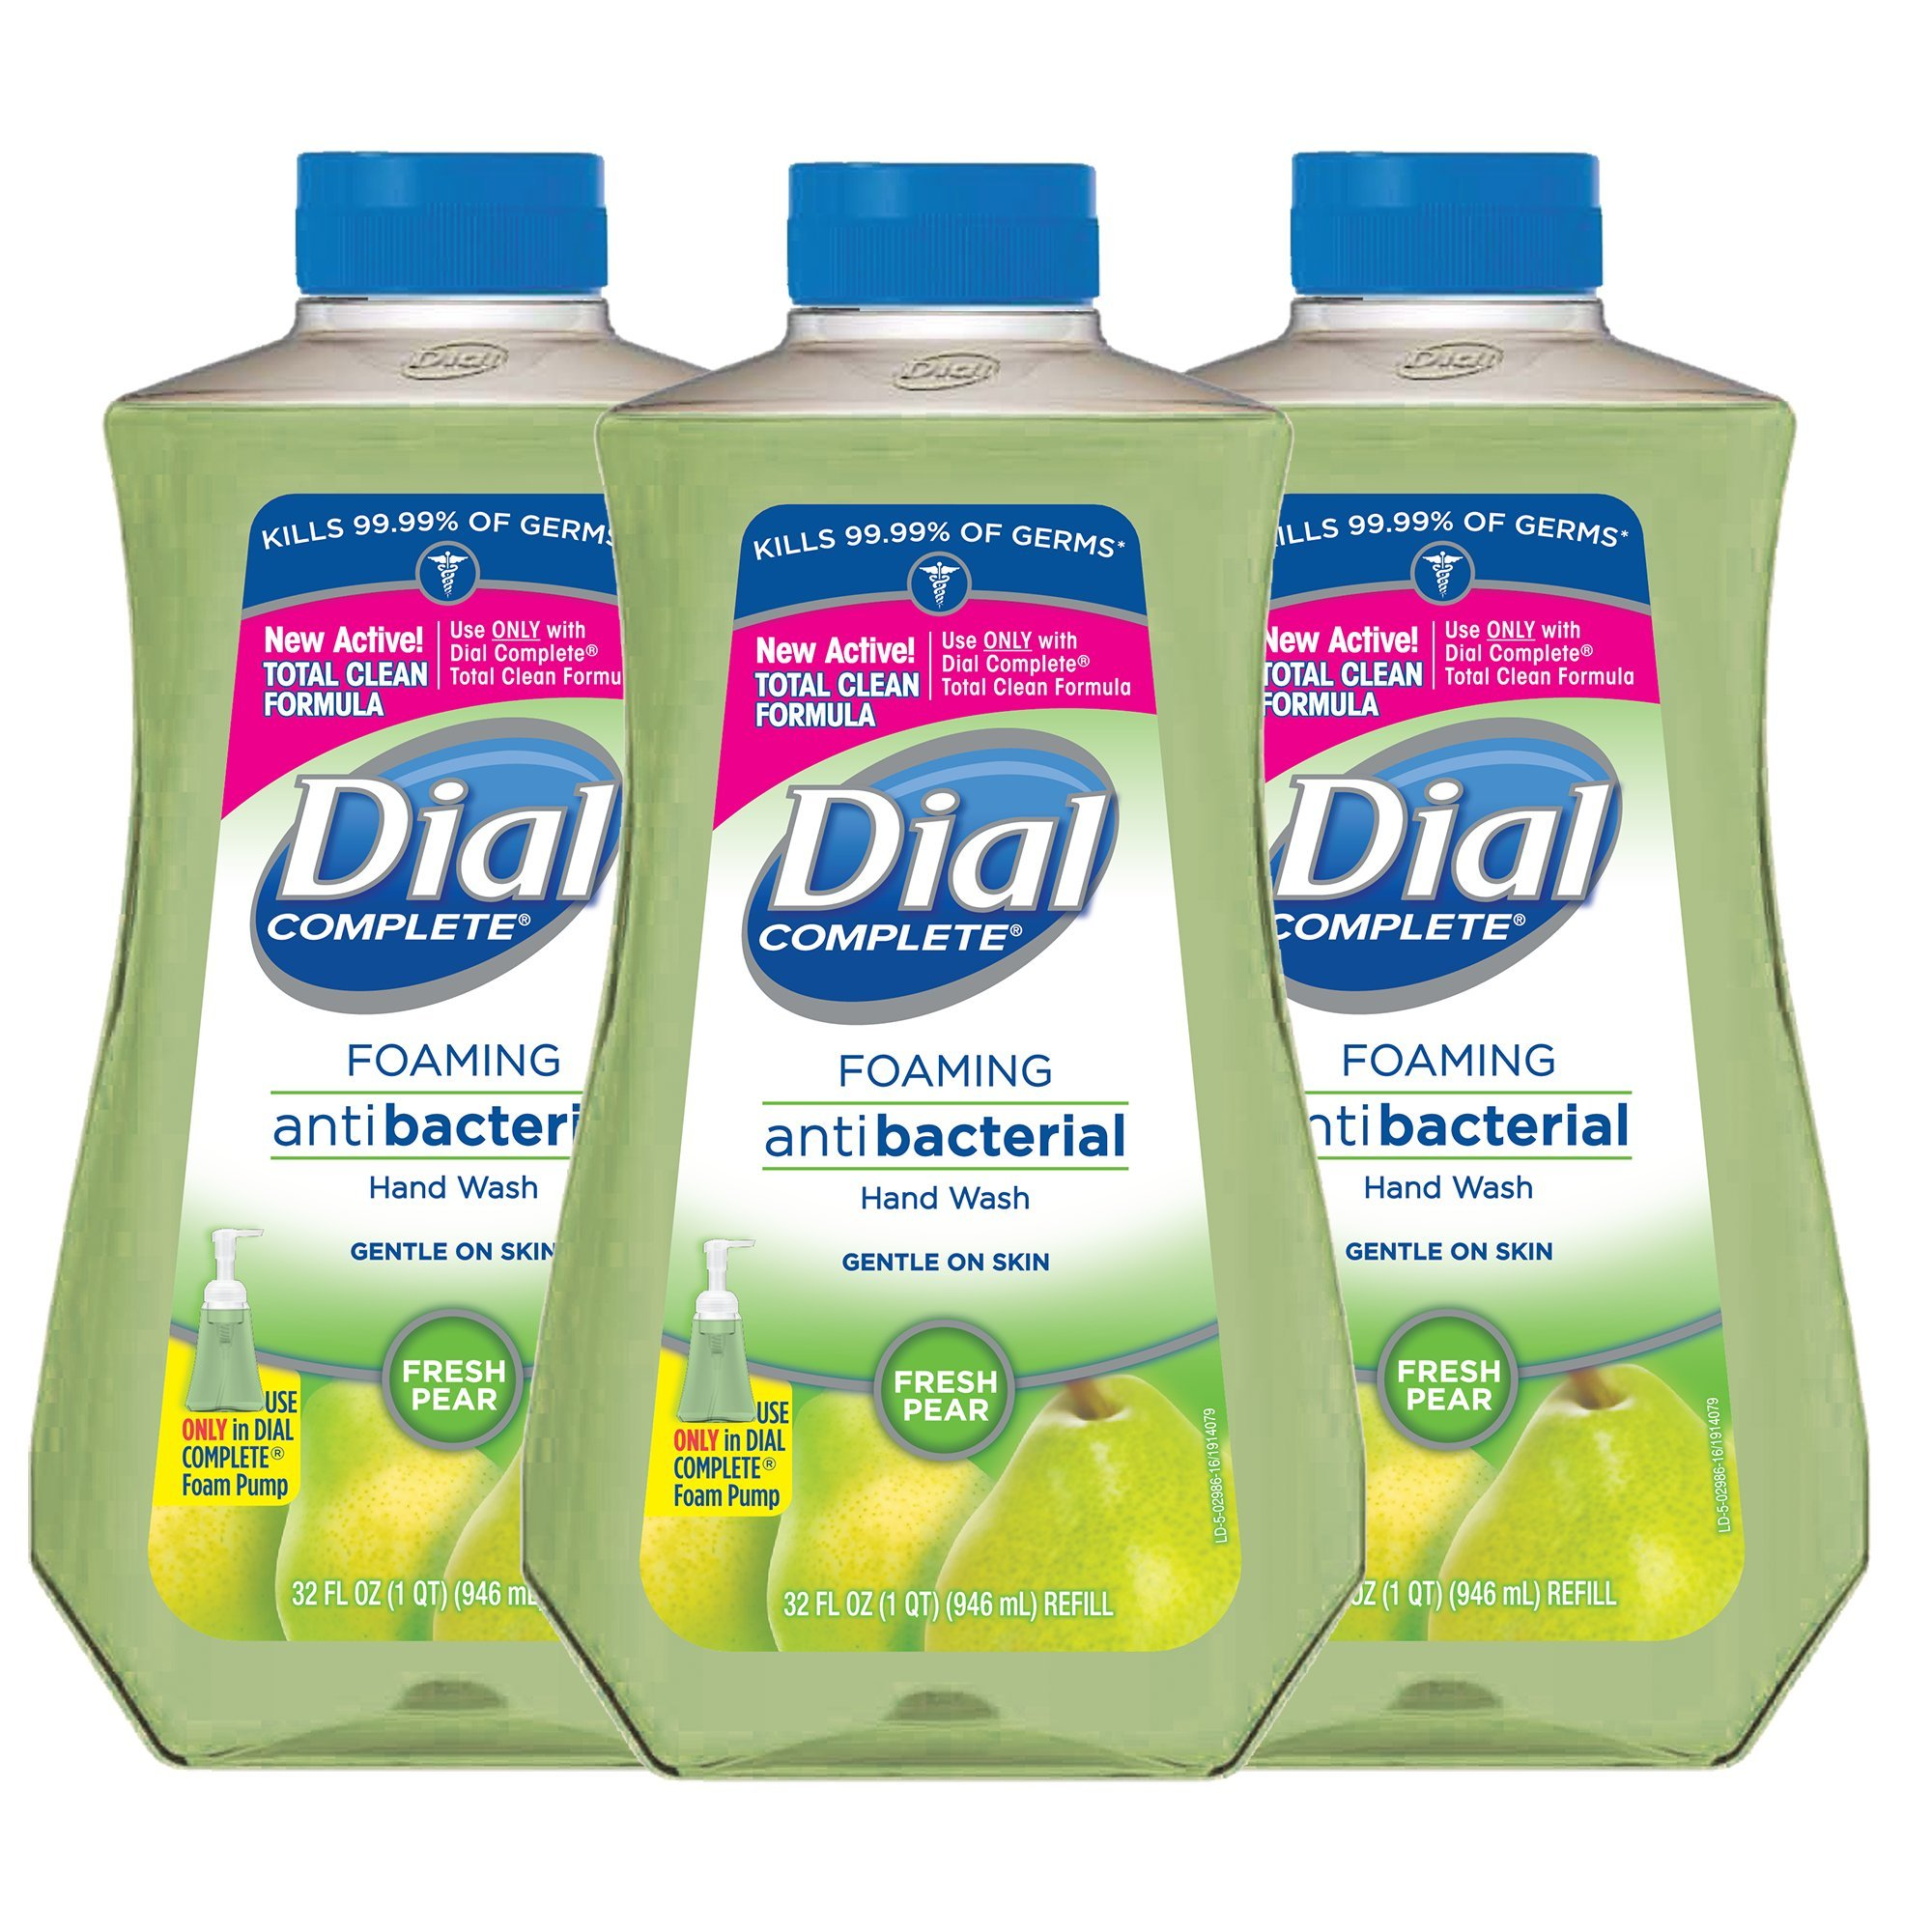 Dial Complete Antibacterial Foaming Hand Soap Refill, Fresh Pear, 32 Fluid Ounces (Pack of 3) by Dial (Image #1)